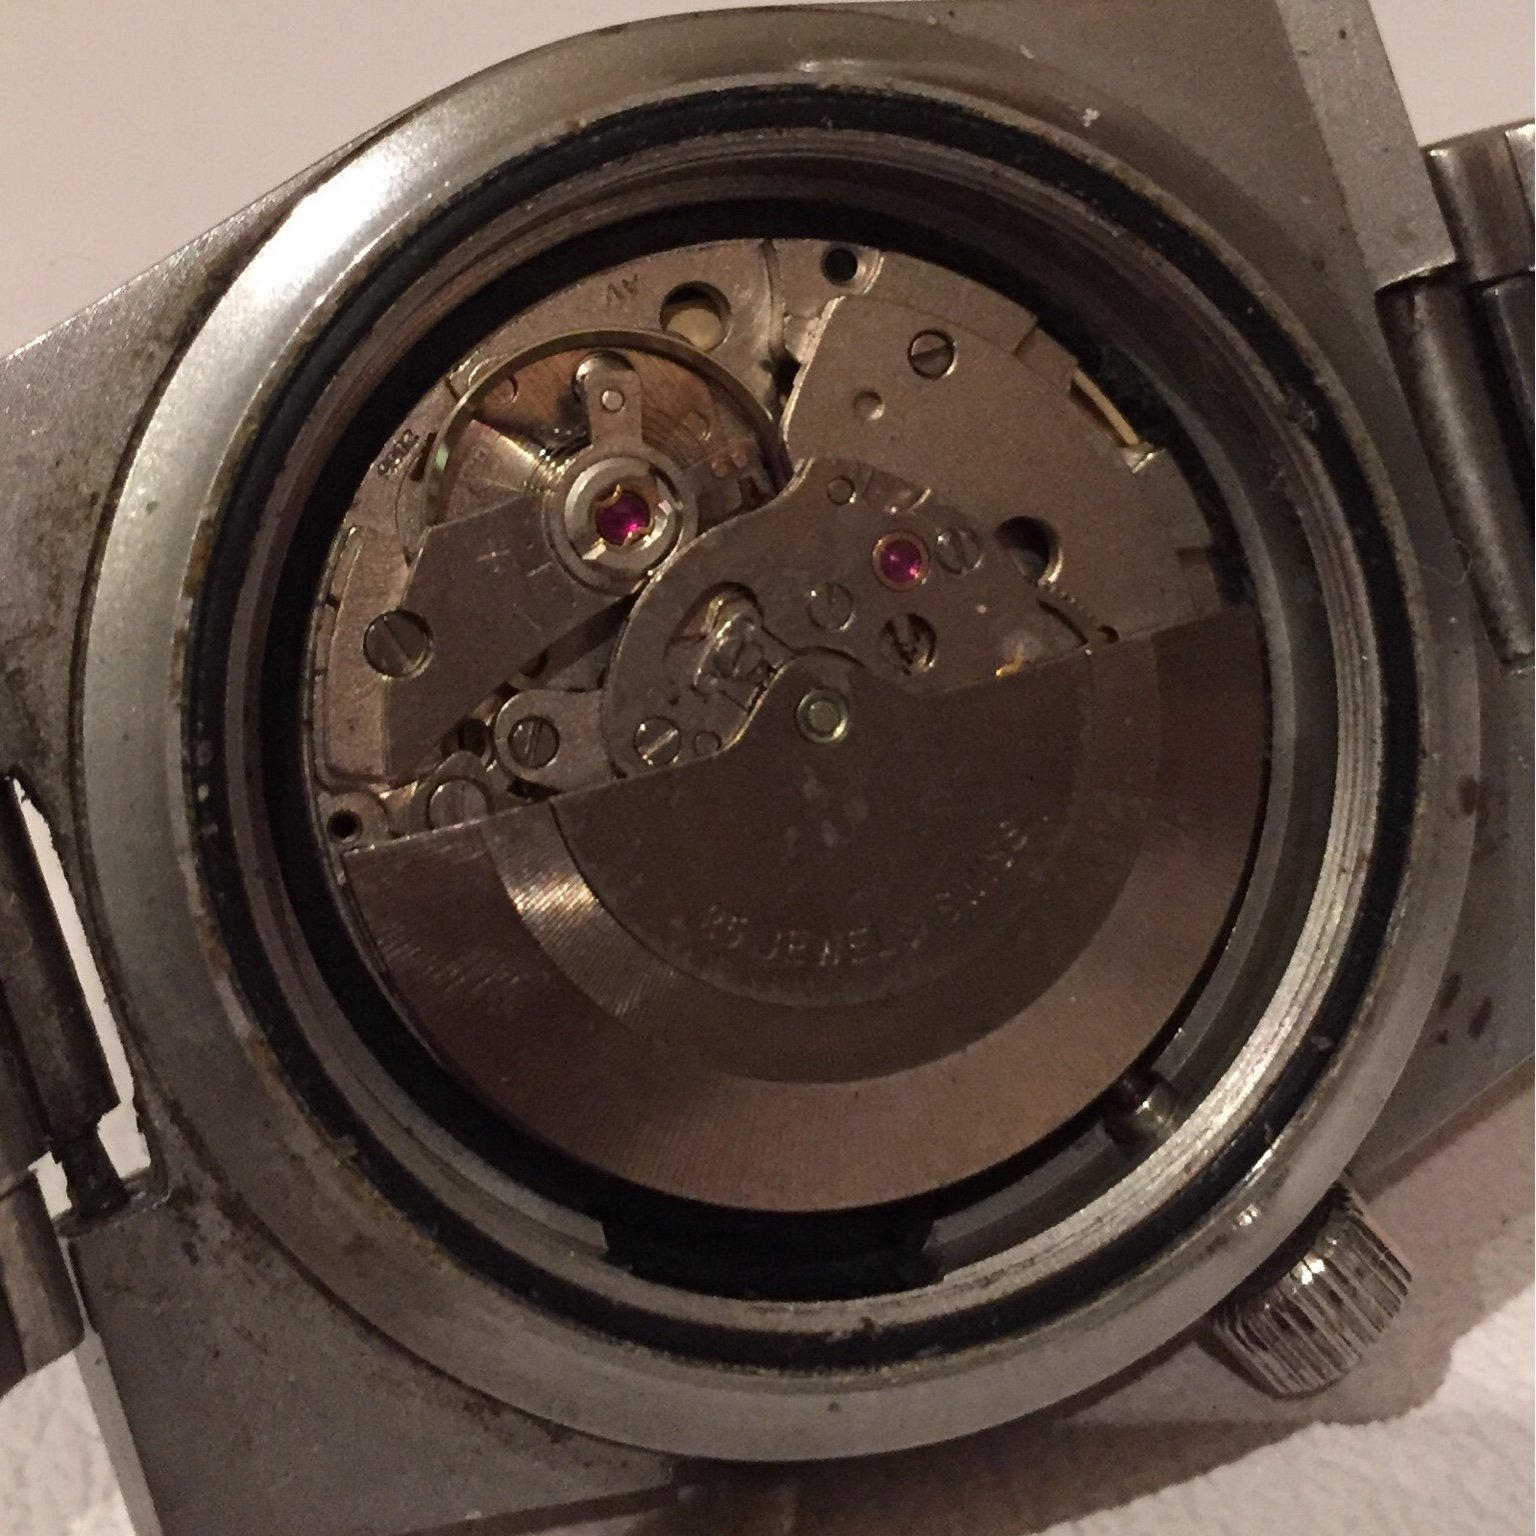 What have found here? Orven De Luxe Diver | Wrist Sushi ...